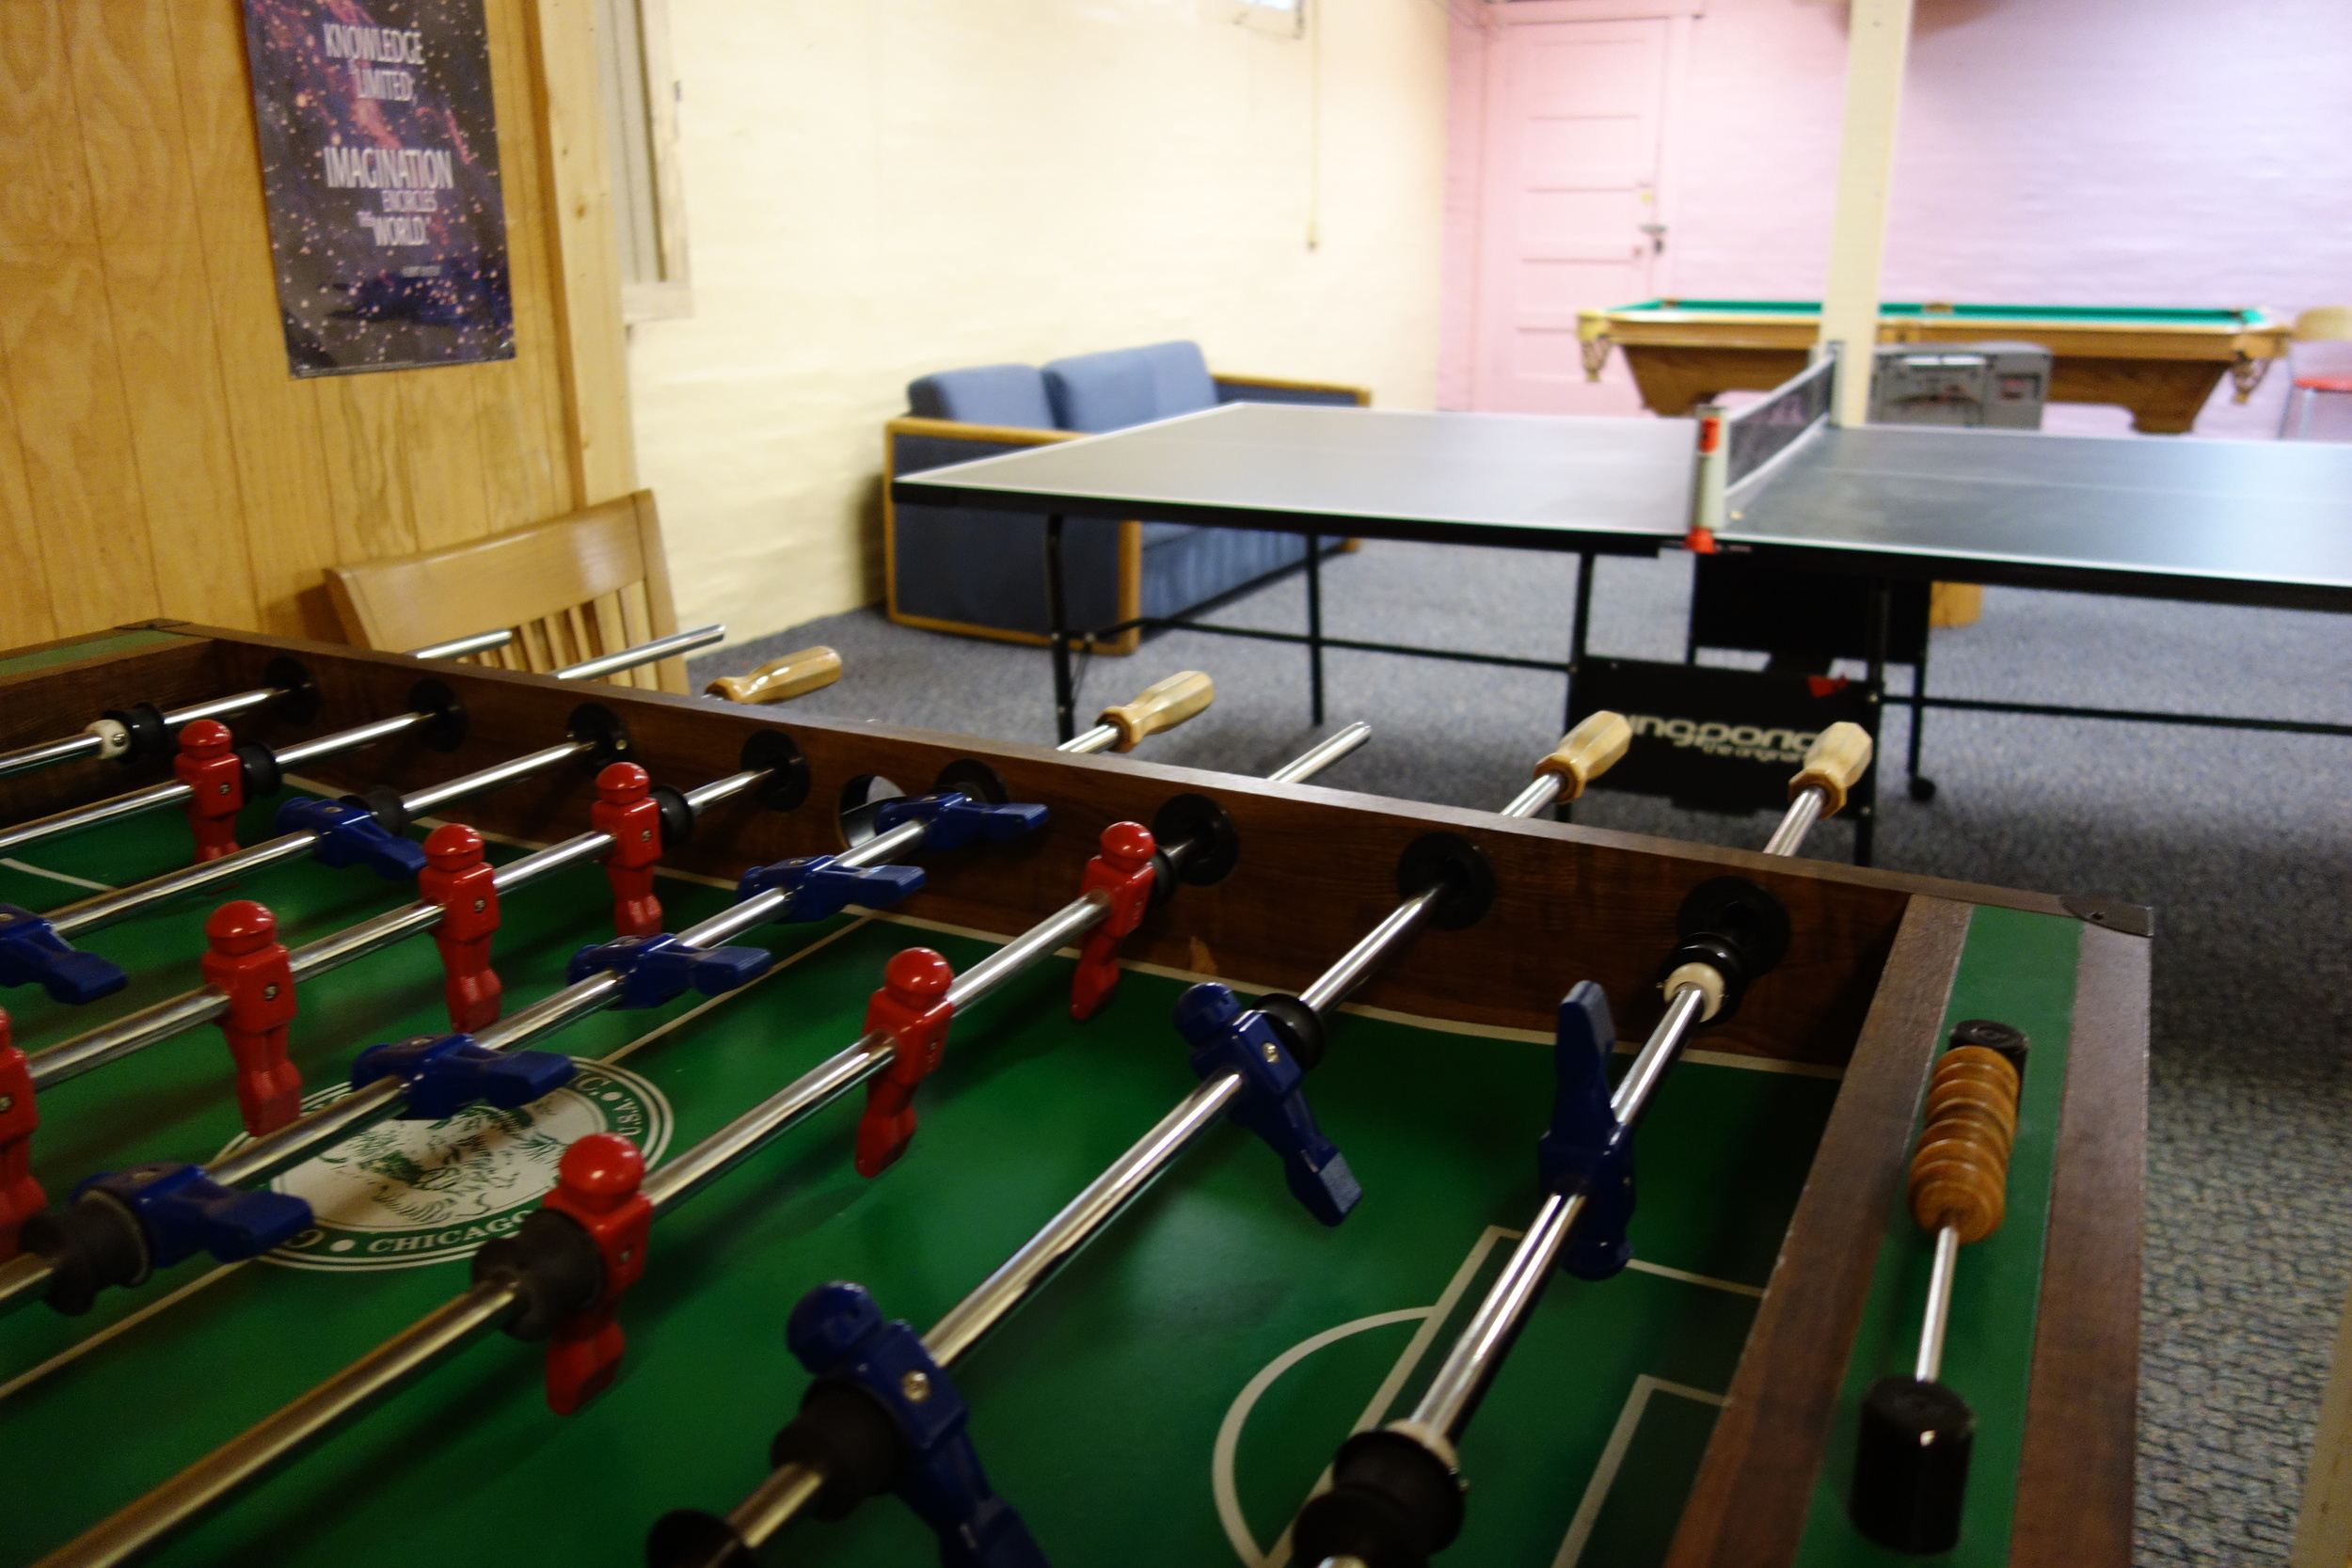 The leisure rooms includes games, foosball, table tennis, and a pool table.